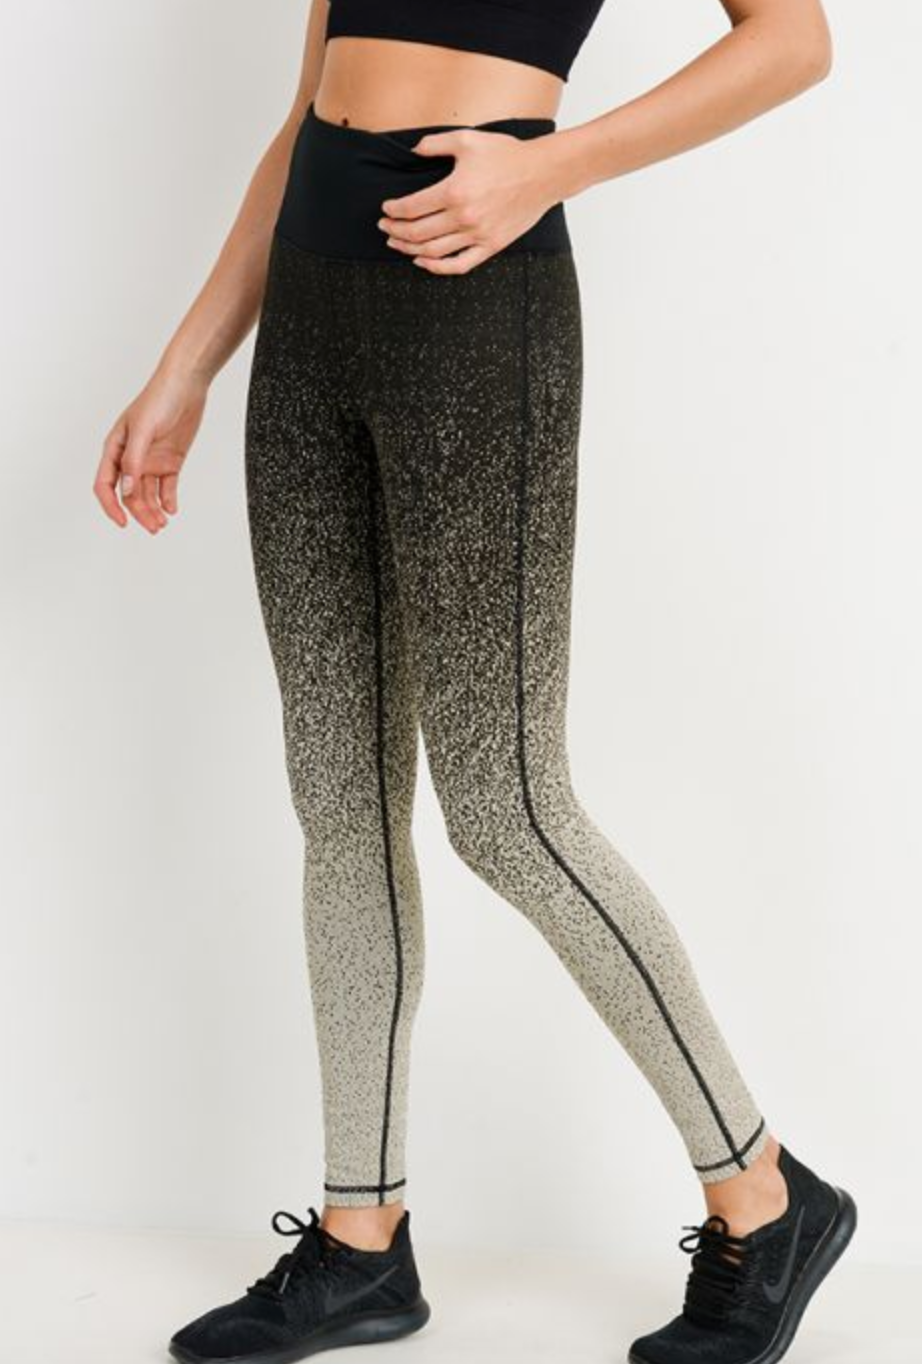 Ombre Printed Hightwaisted Leggings